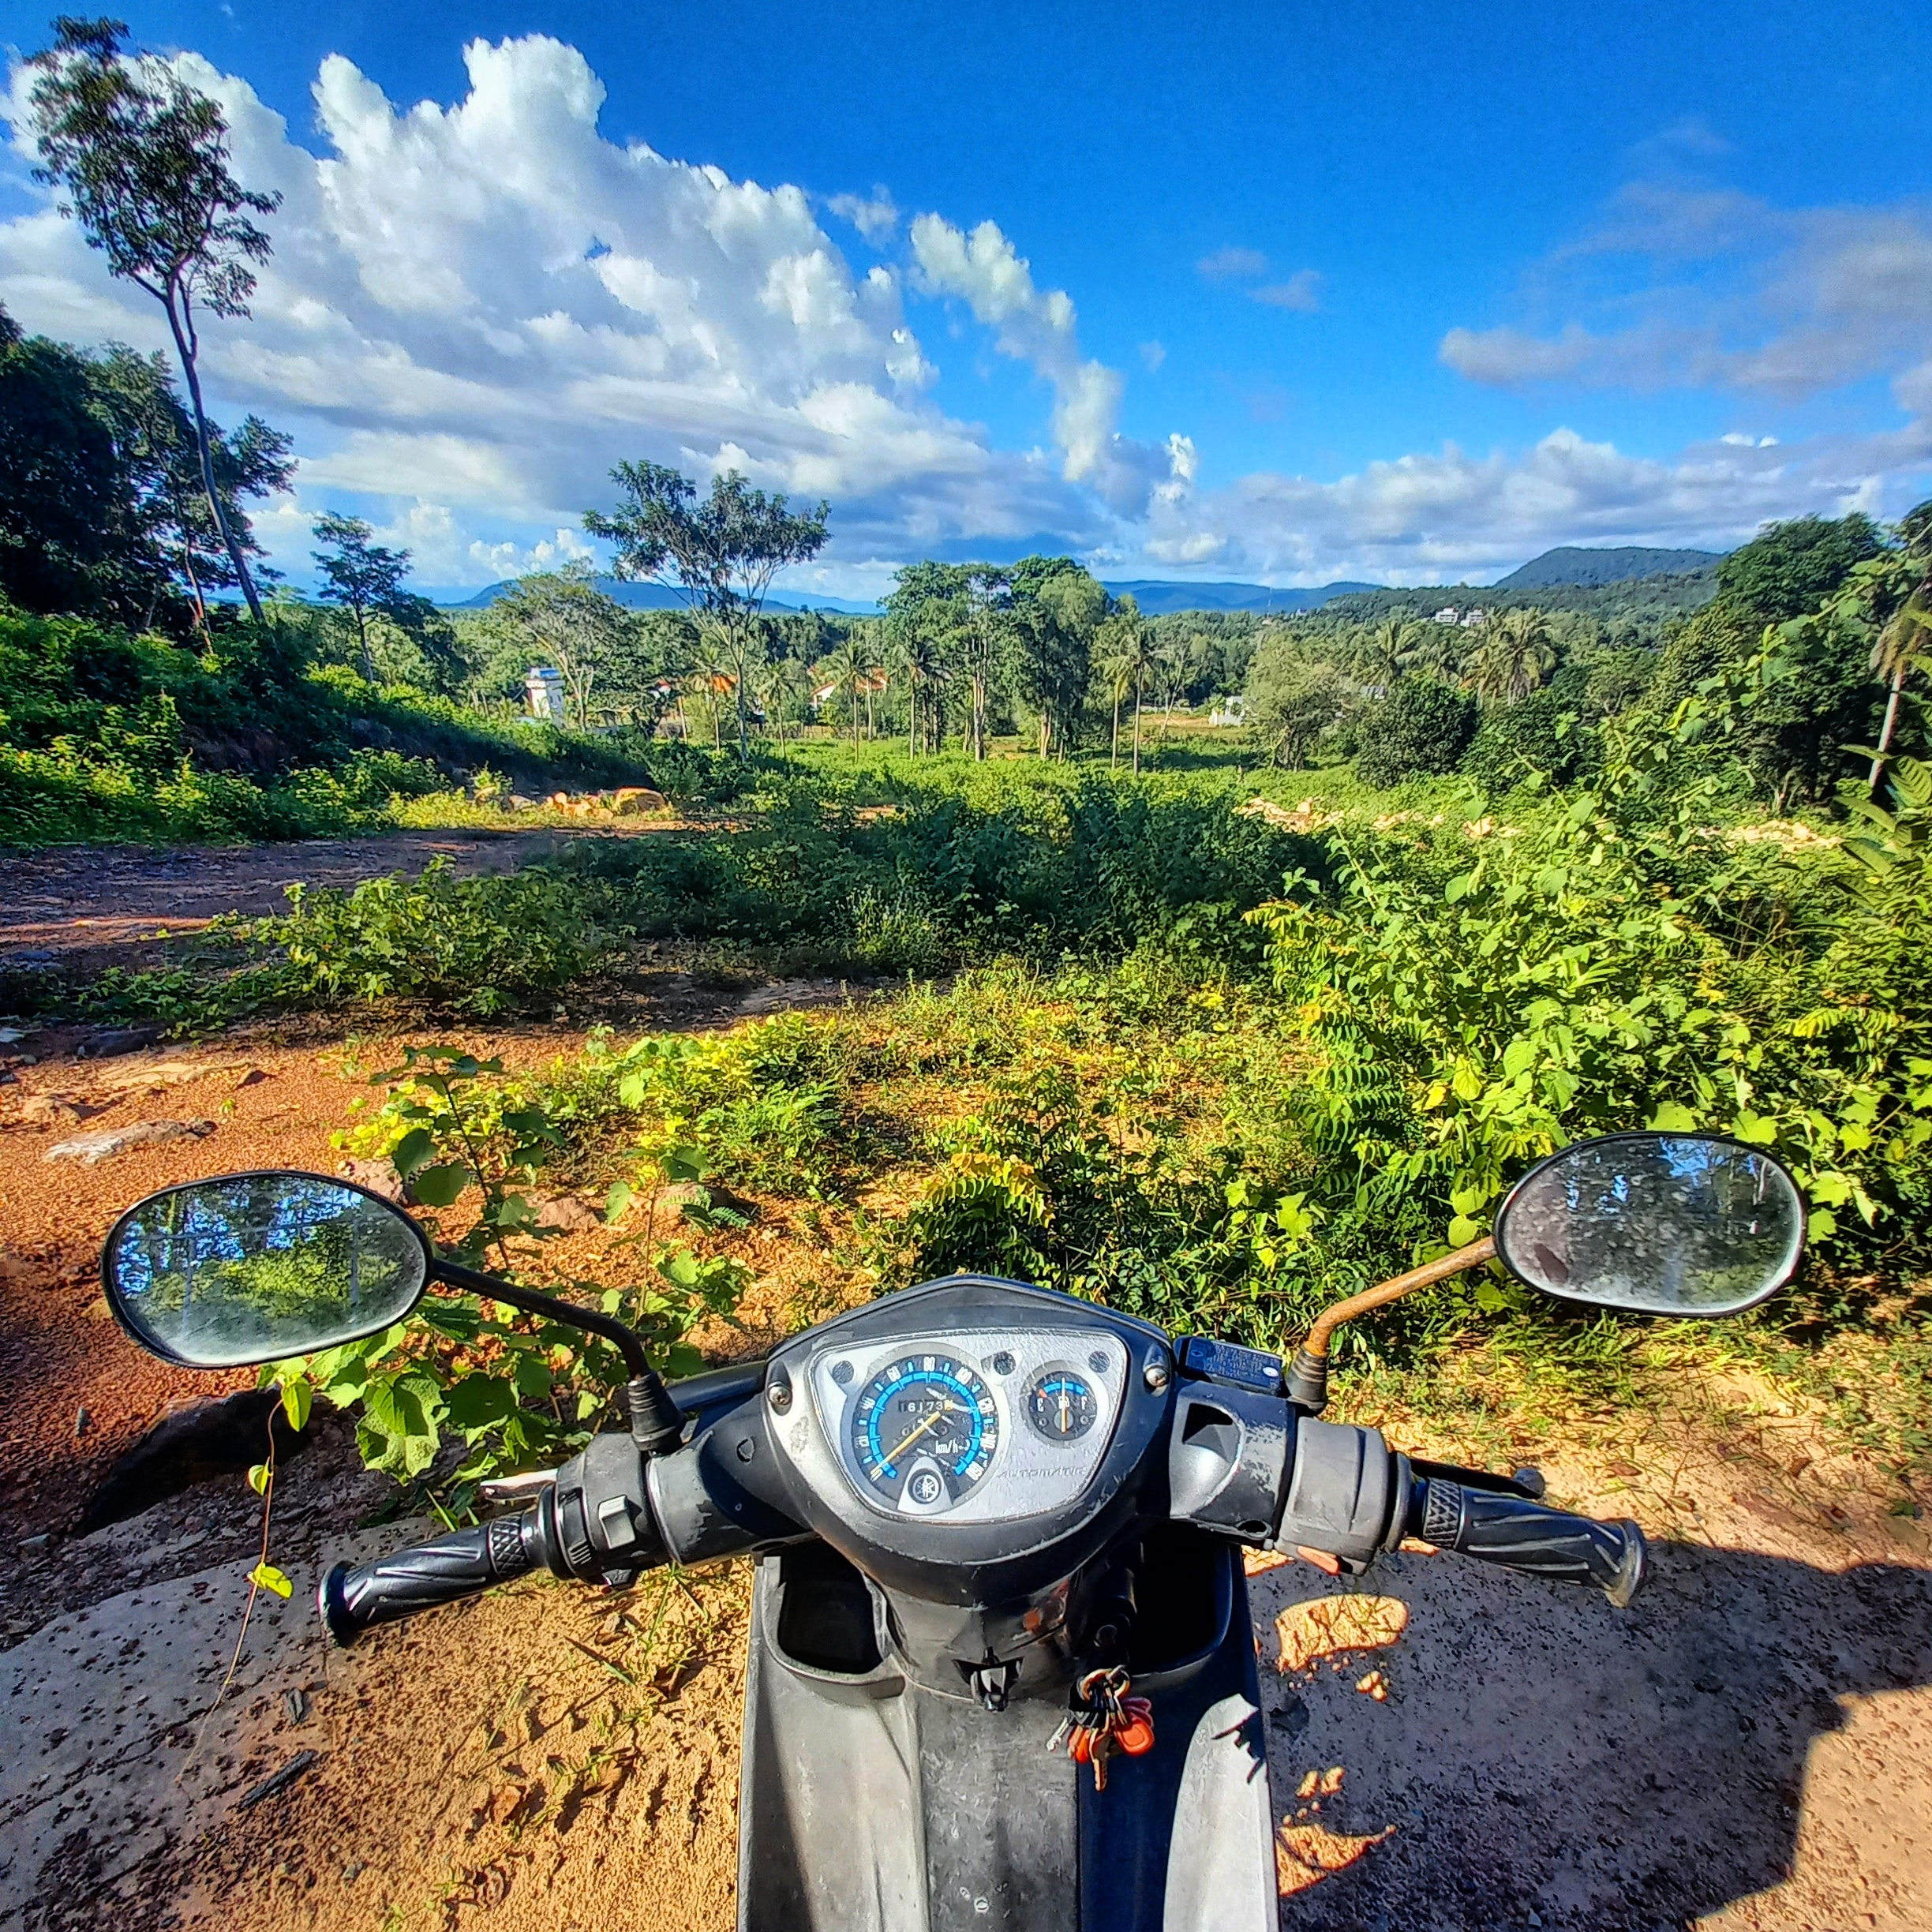 101 Images to Inspire a Road Trip by Motorbike in Vietnam